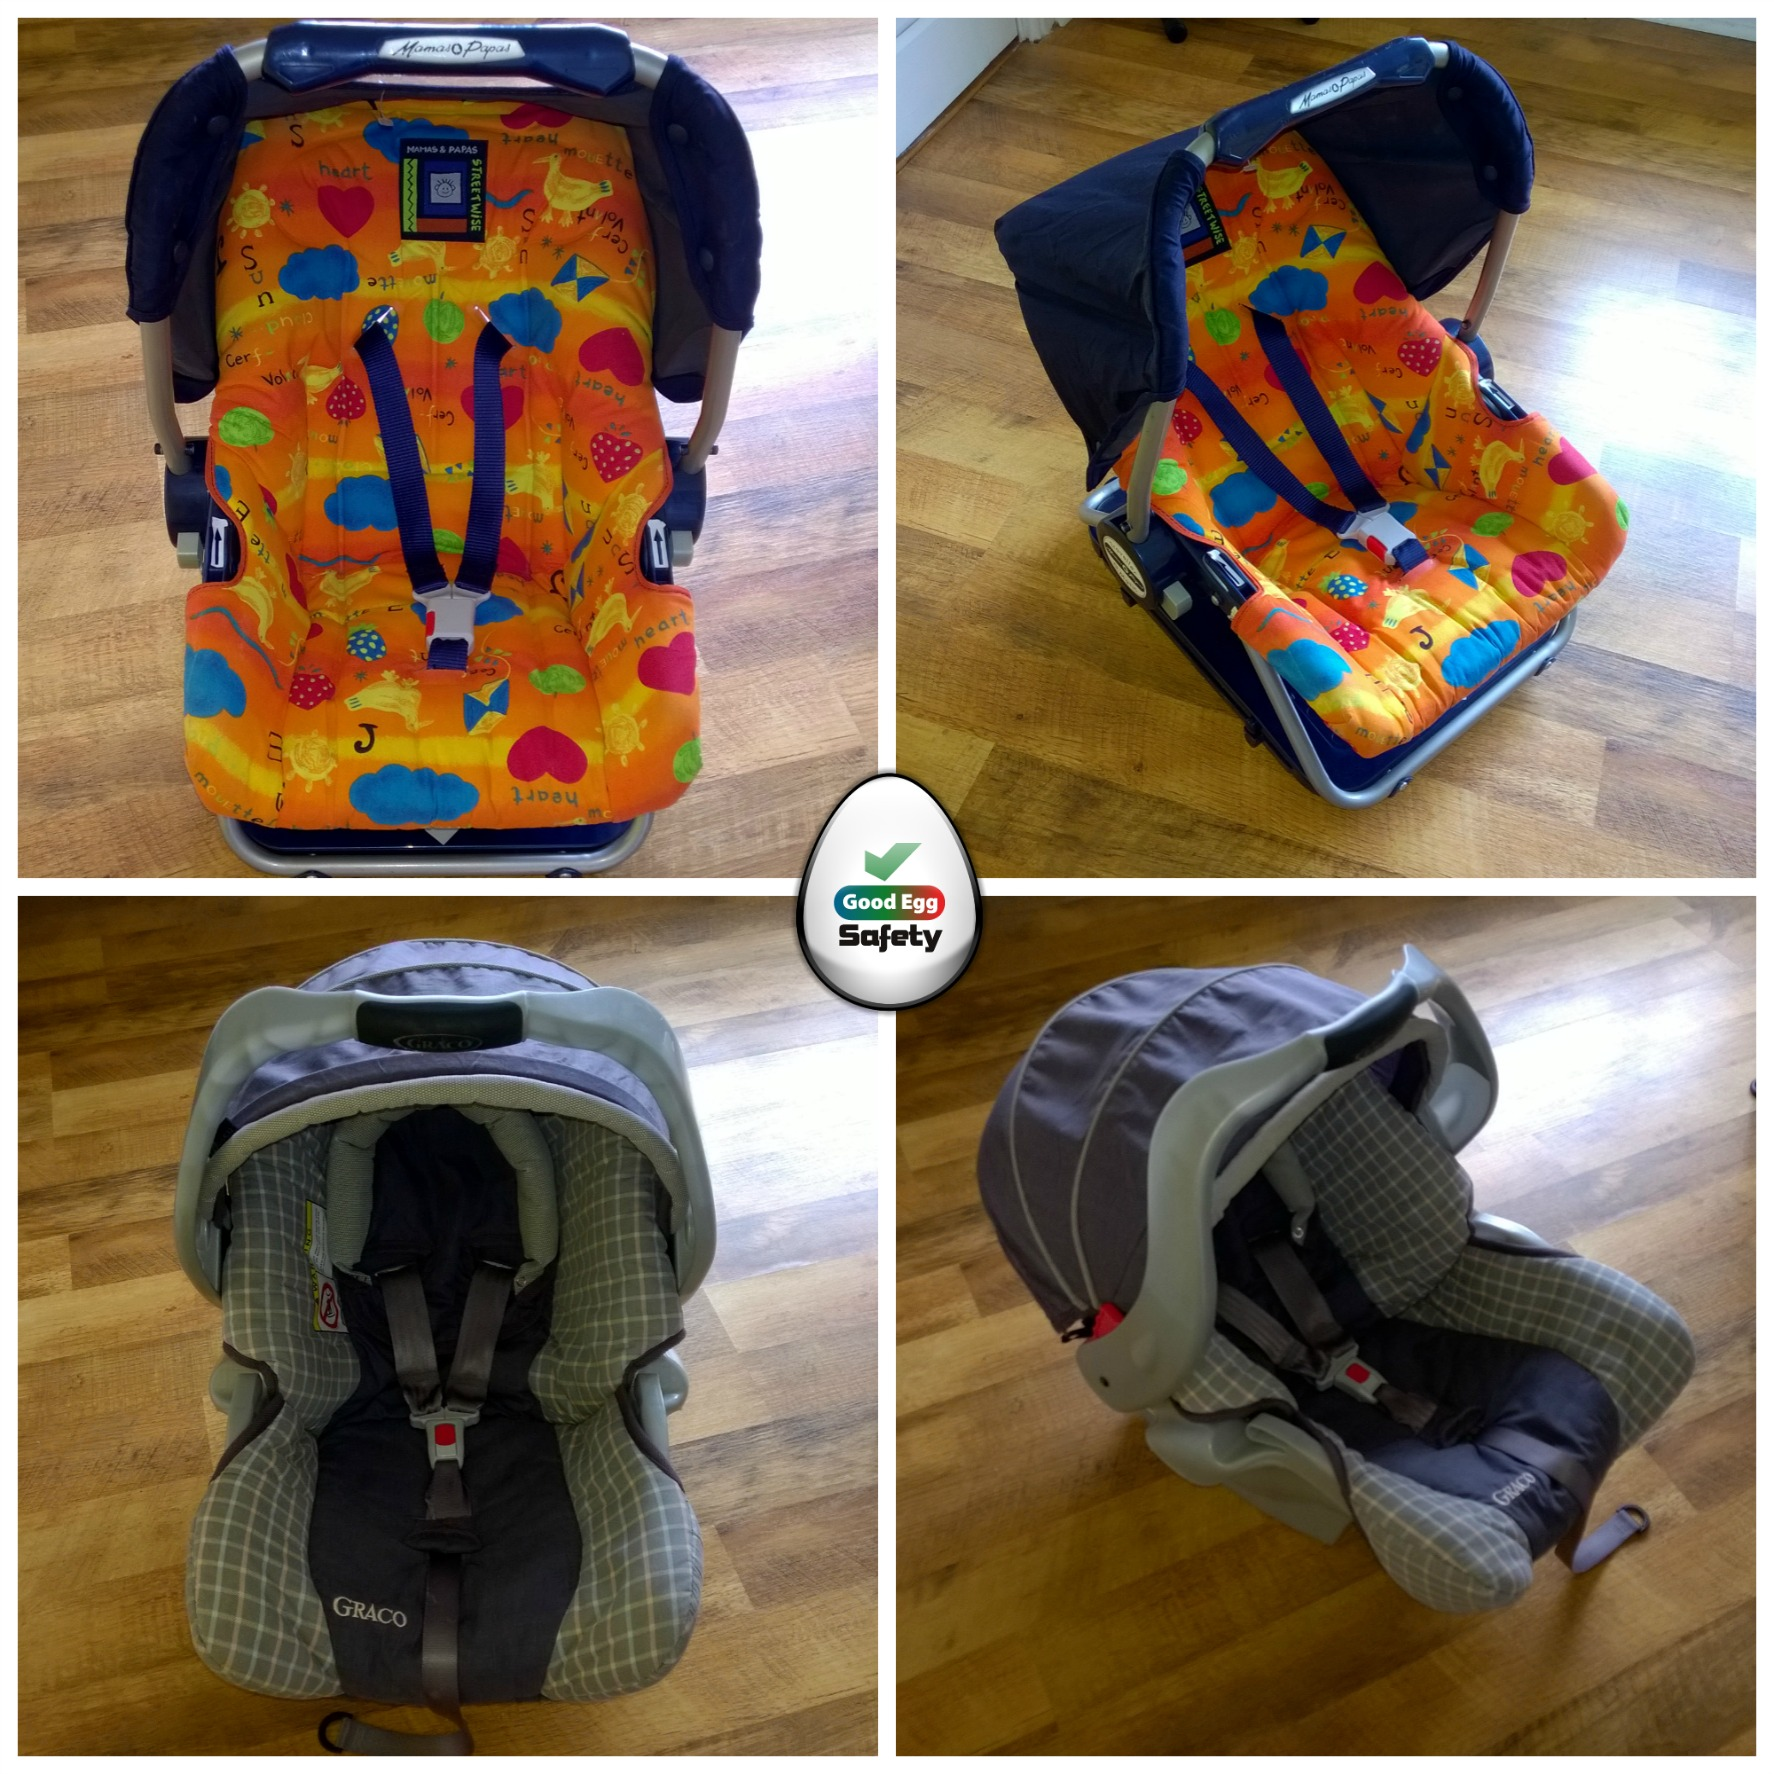 Baby Car Seat Test Do Child Car Seats Expire Good Egg Car Safety